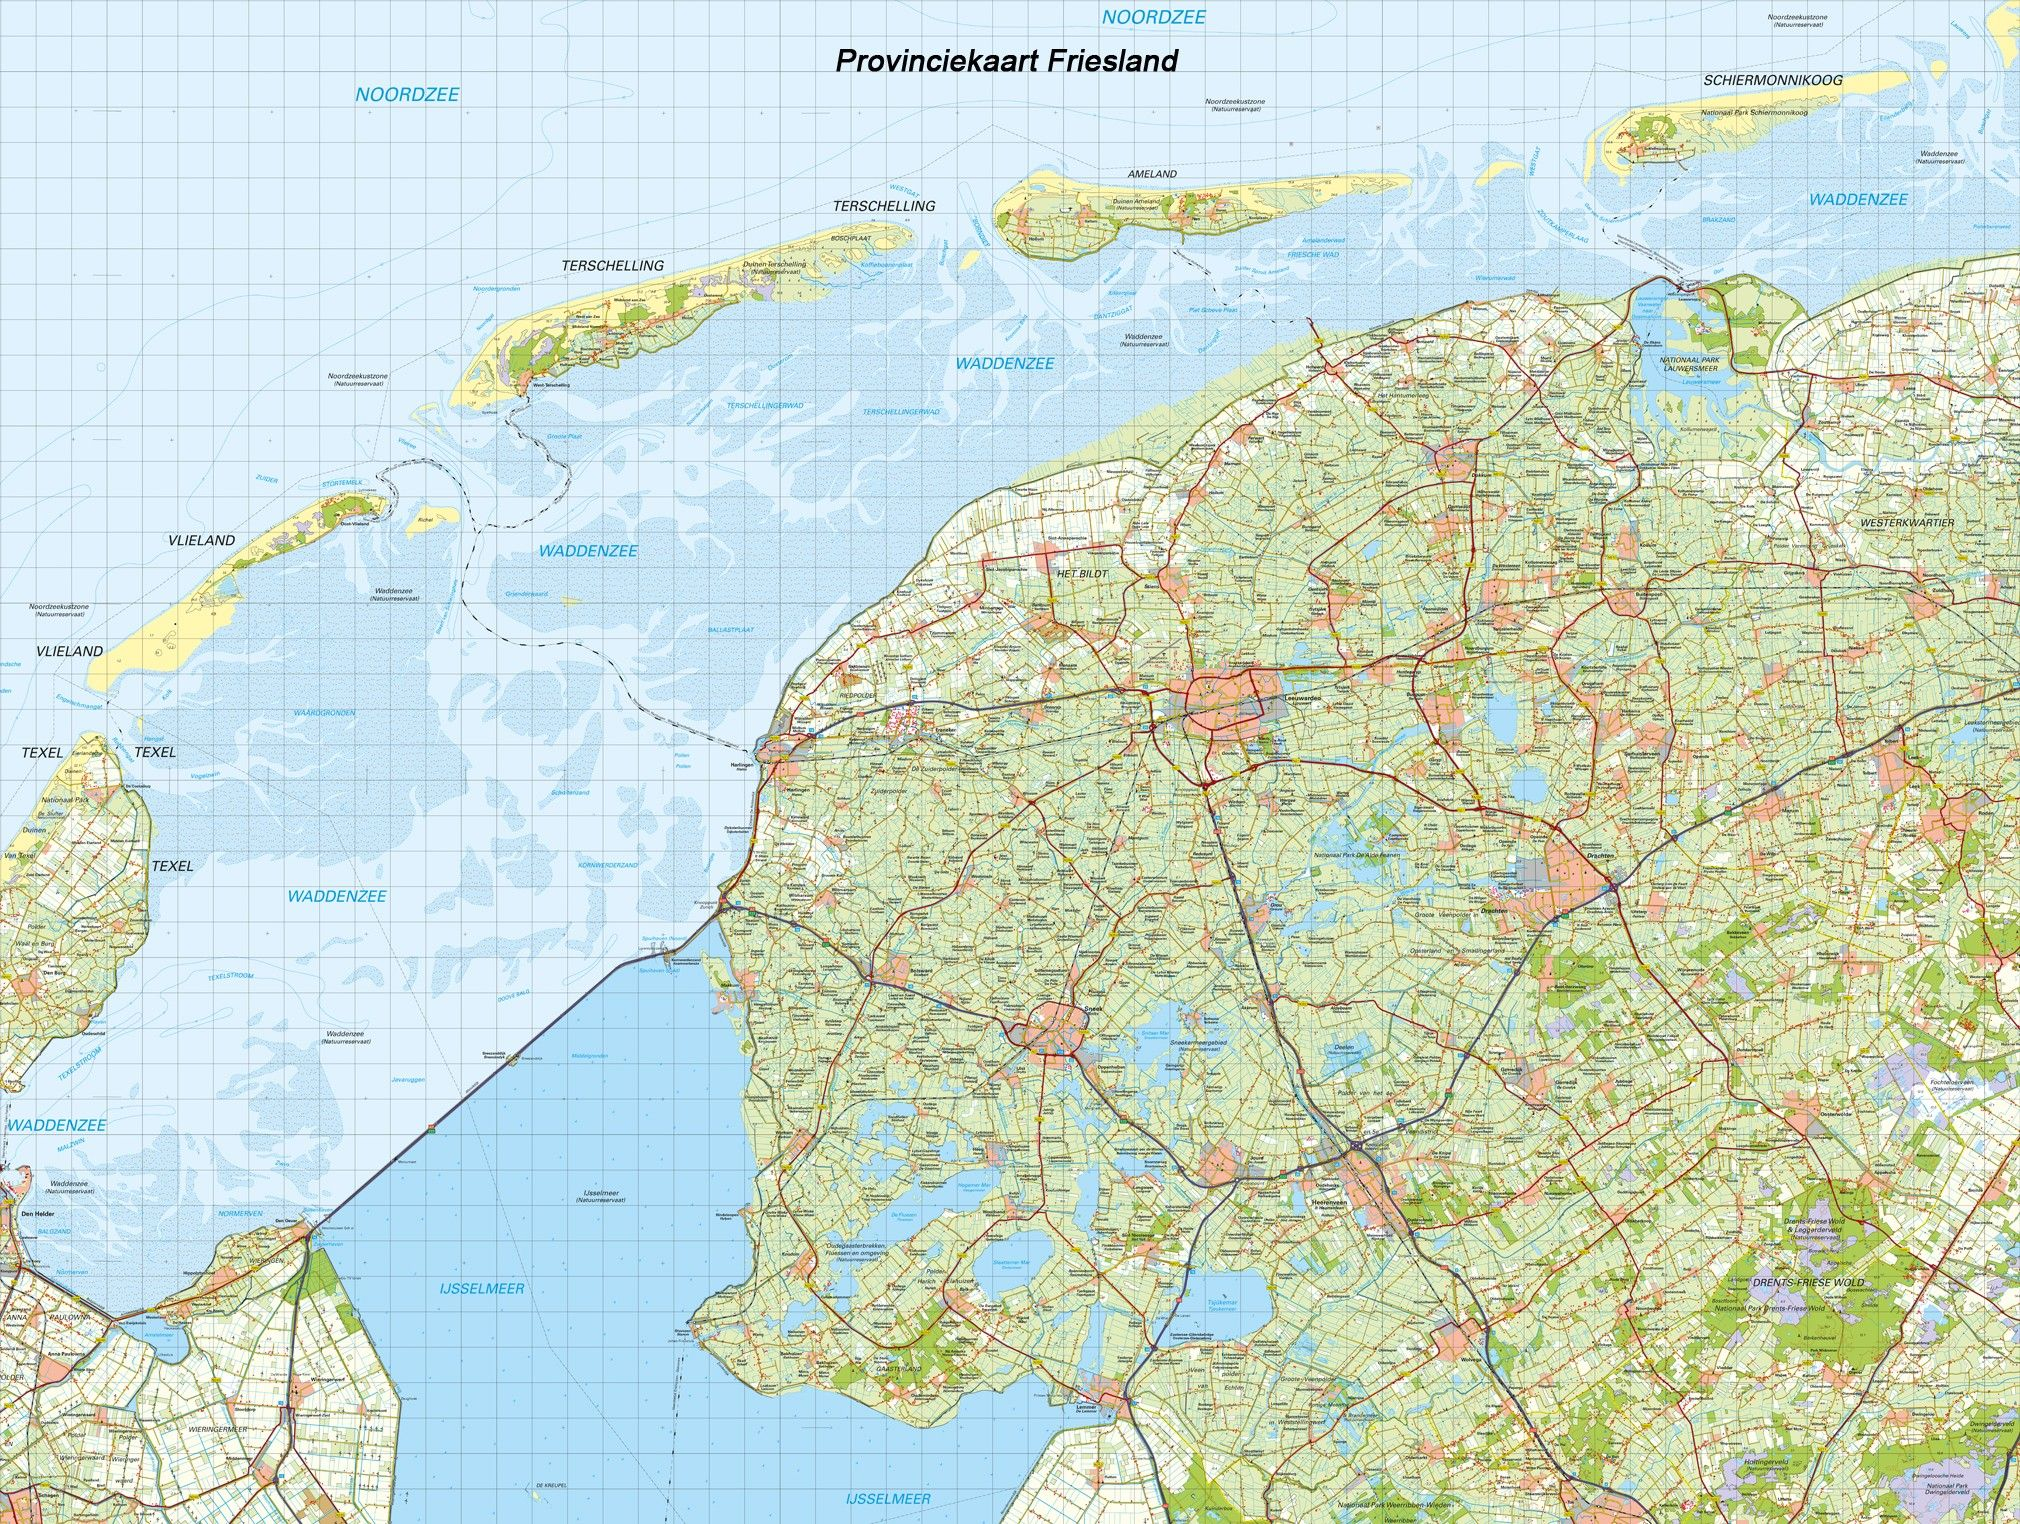 Digitale Provinciekaart Friesland 1:100.000